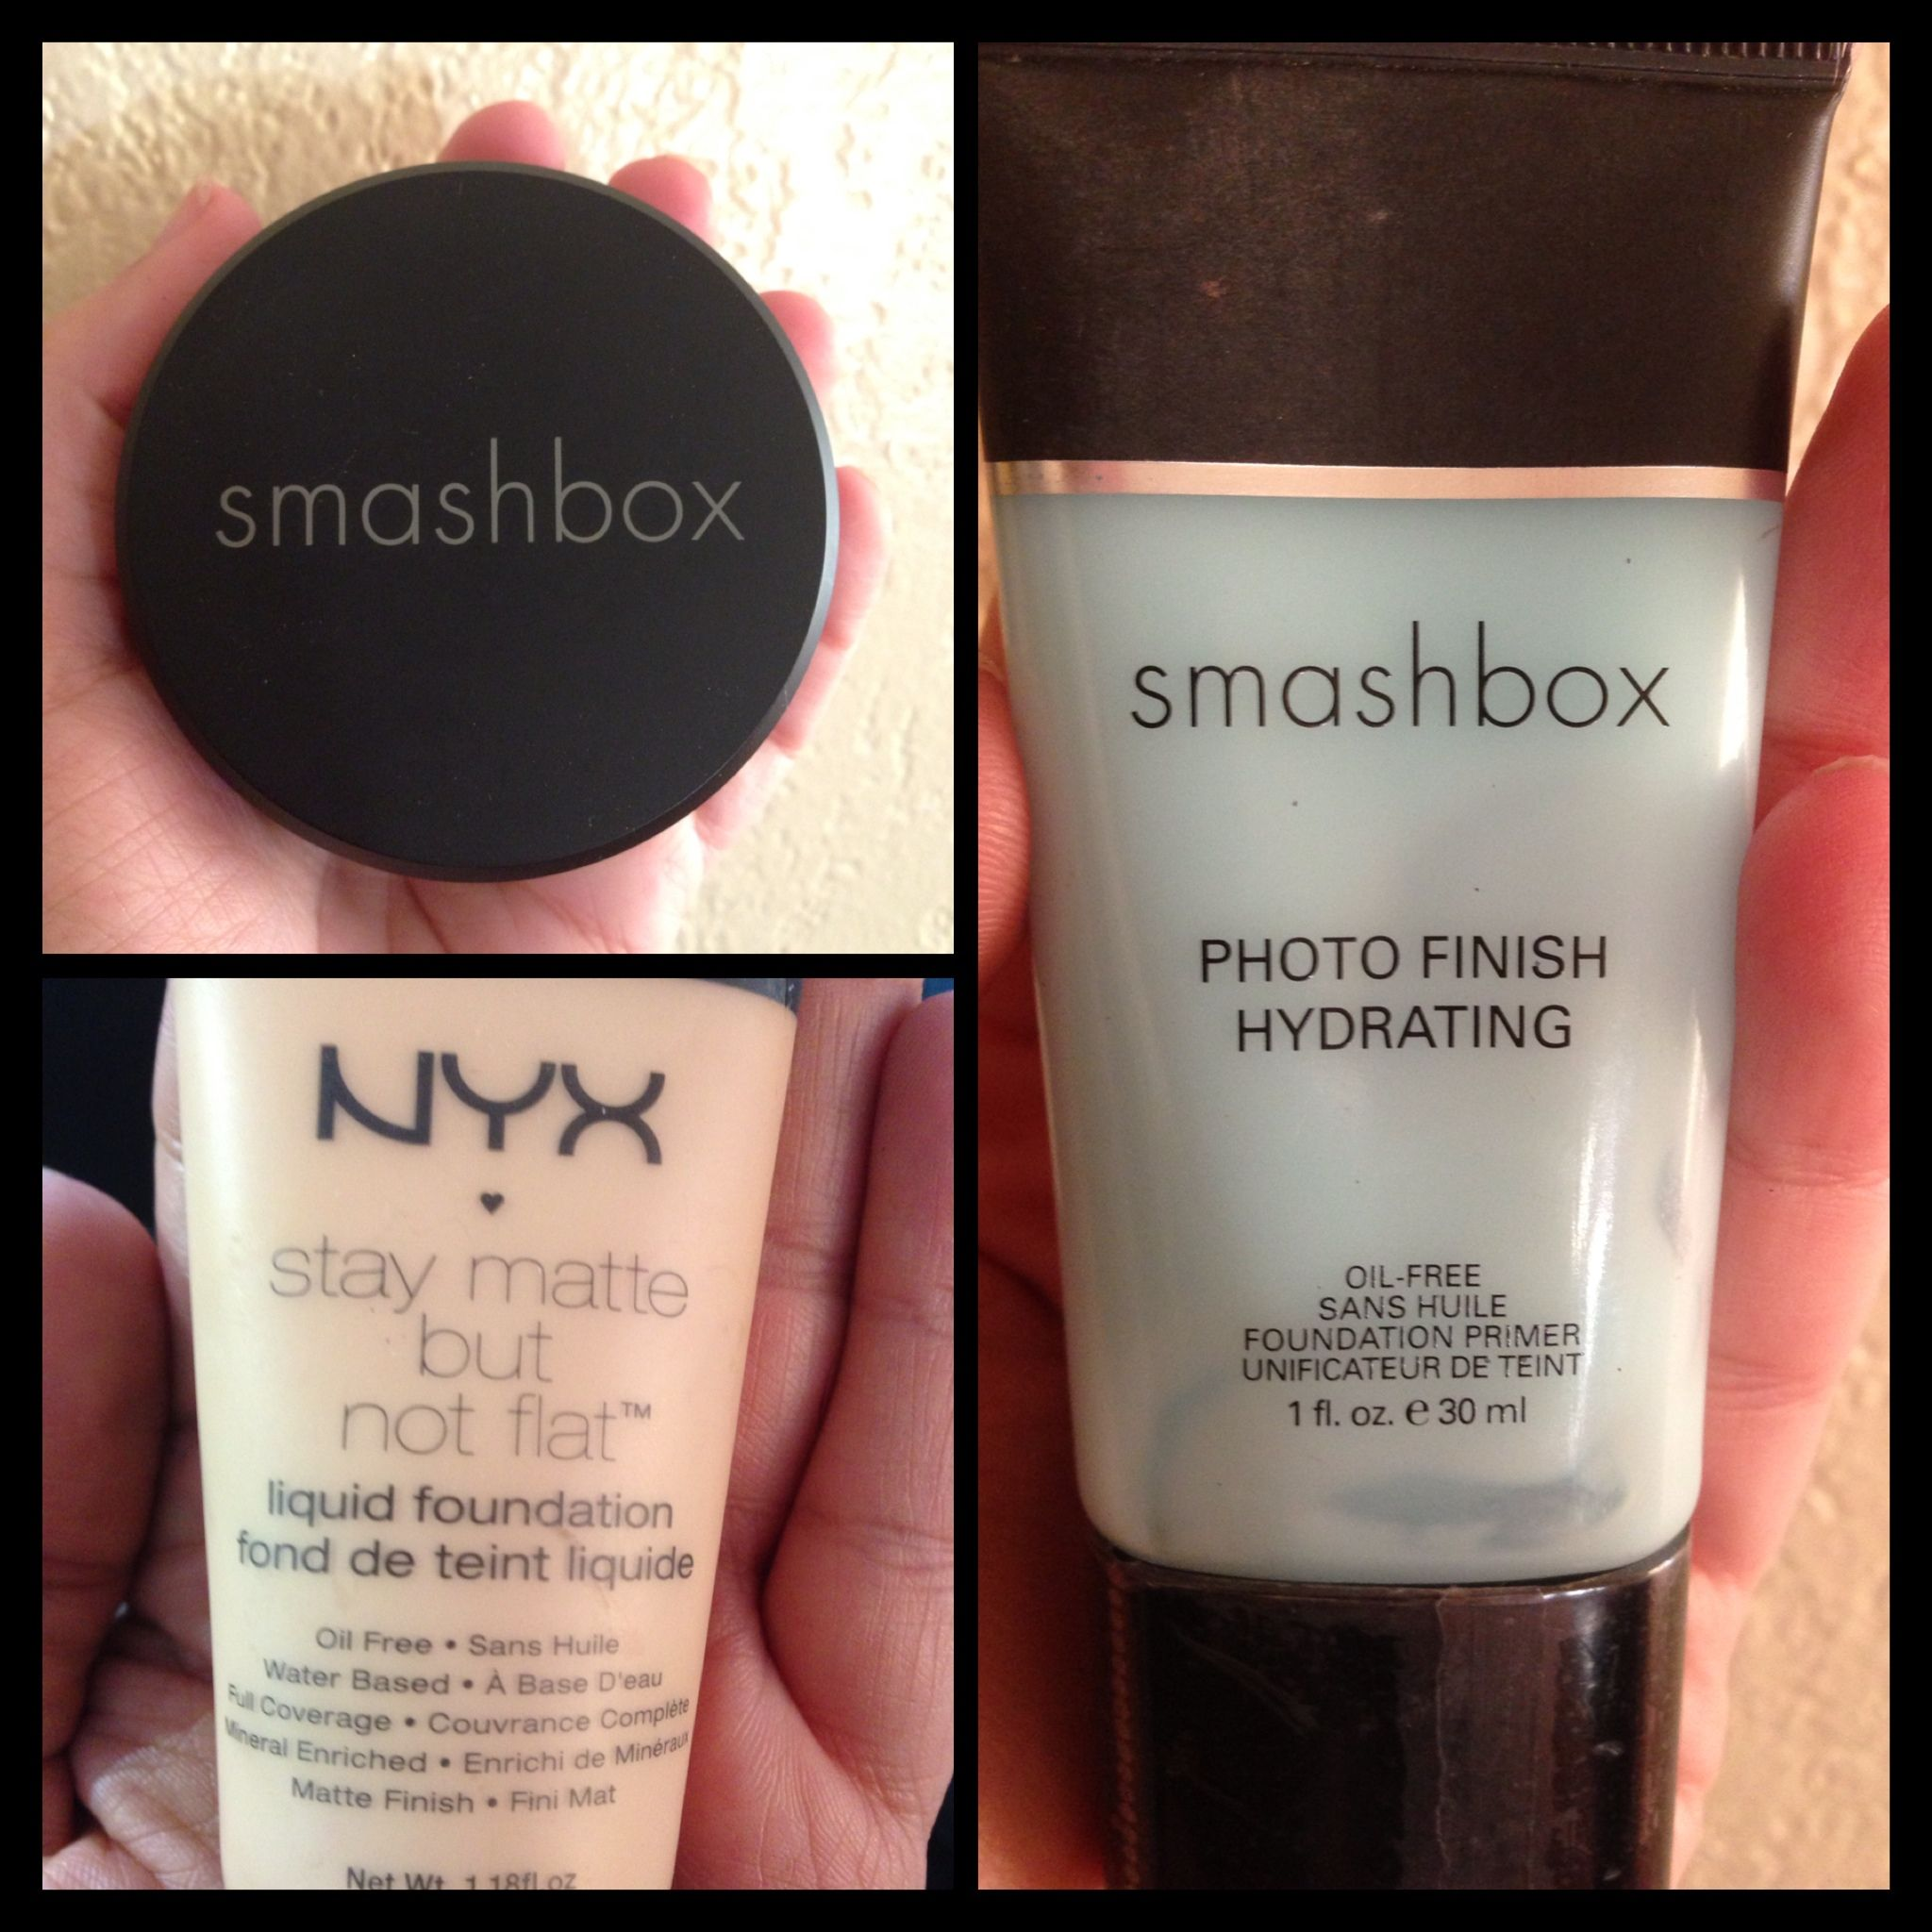 Nyx Stay Matte But Not Flat Powder Foundation Shade Finder Perfect Complexion Cocktail Smashbox Hydrating Primer Nyx Stay Matte But Not Flat Full Coverage Foundation Perfect Complexion Nyx Cosmetics Hydrating Primer